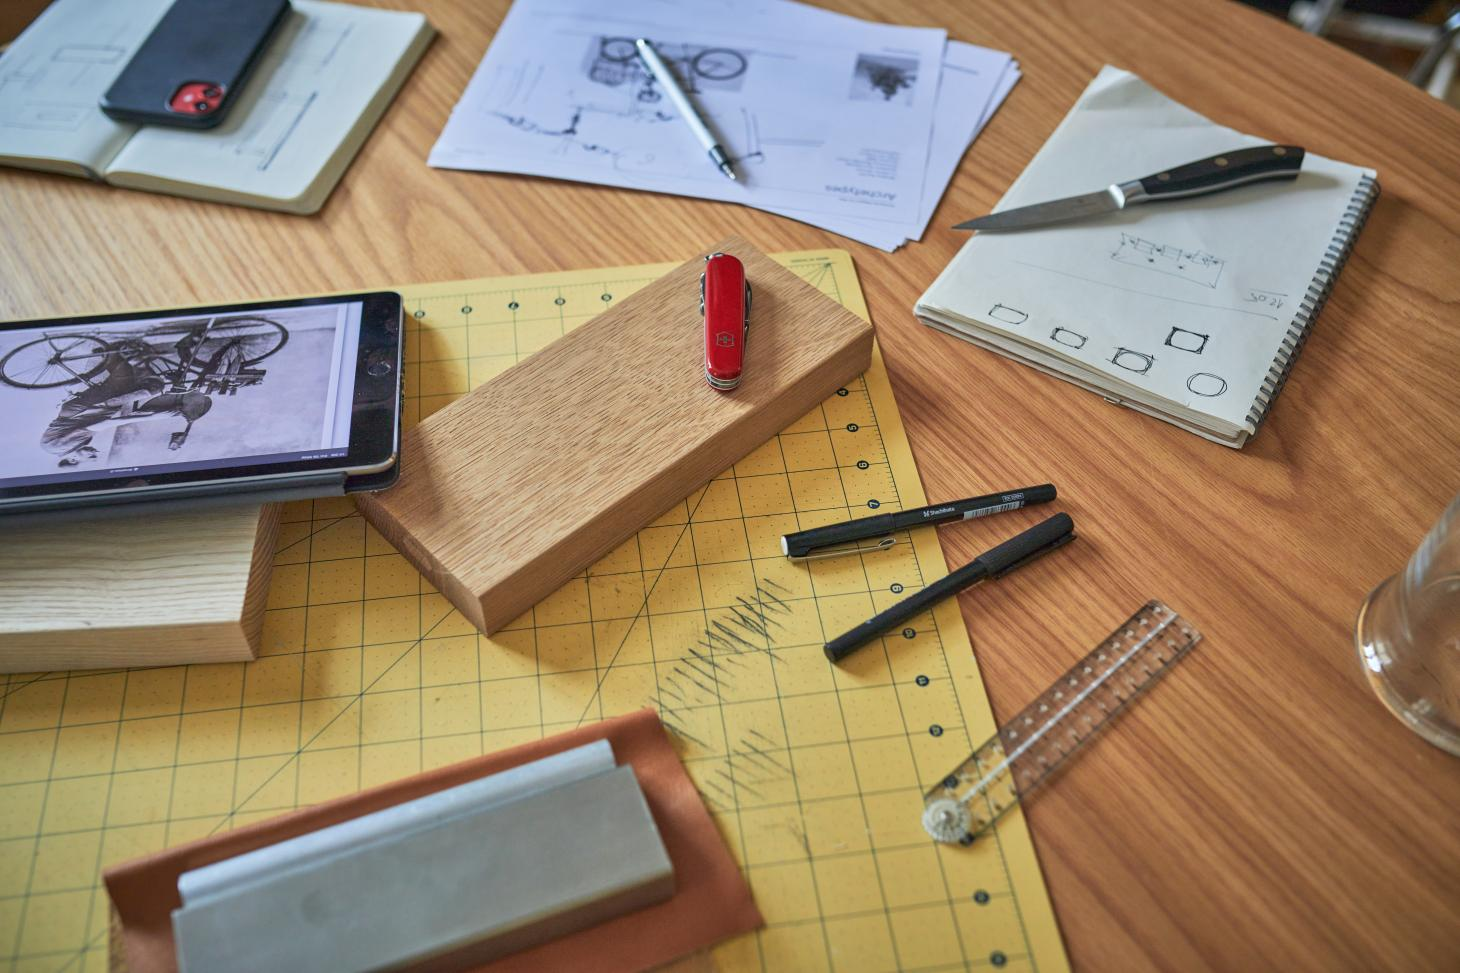 Sketches and photographs on a desk at Jenkins and Uhnger's studio, including a series of Victorinox knives as part of their project development